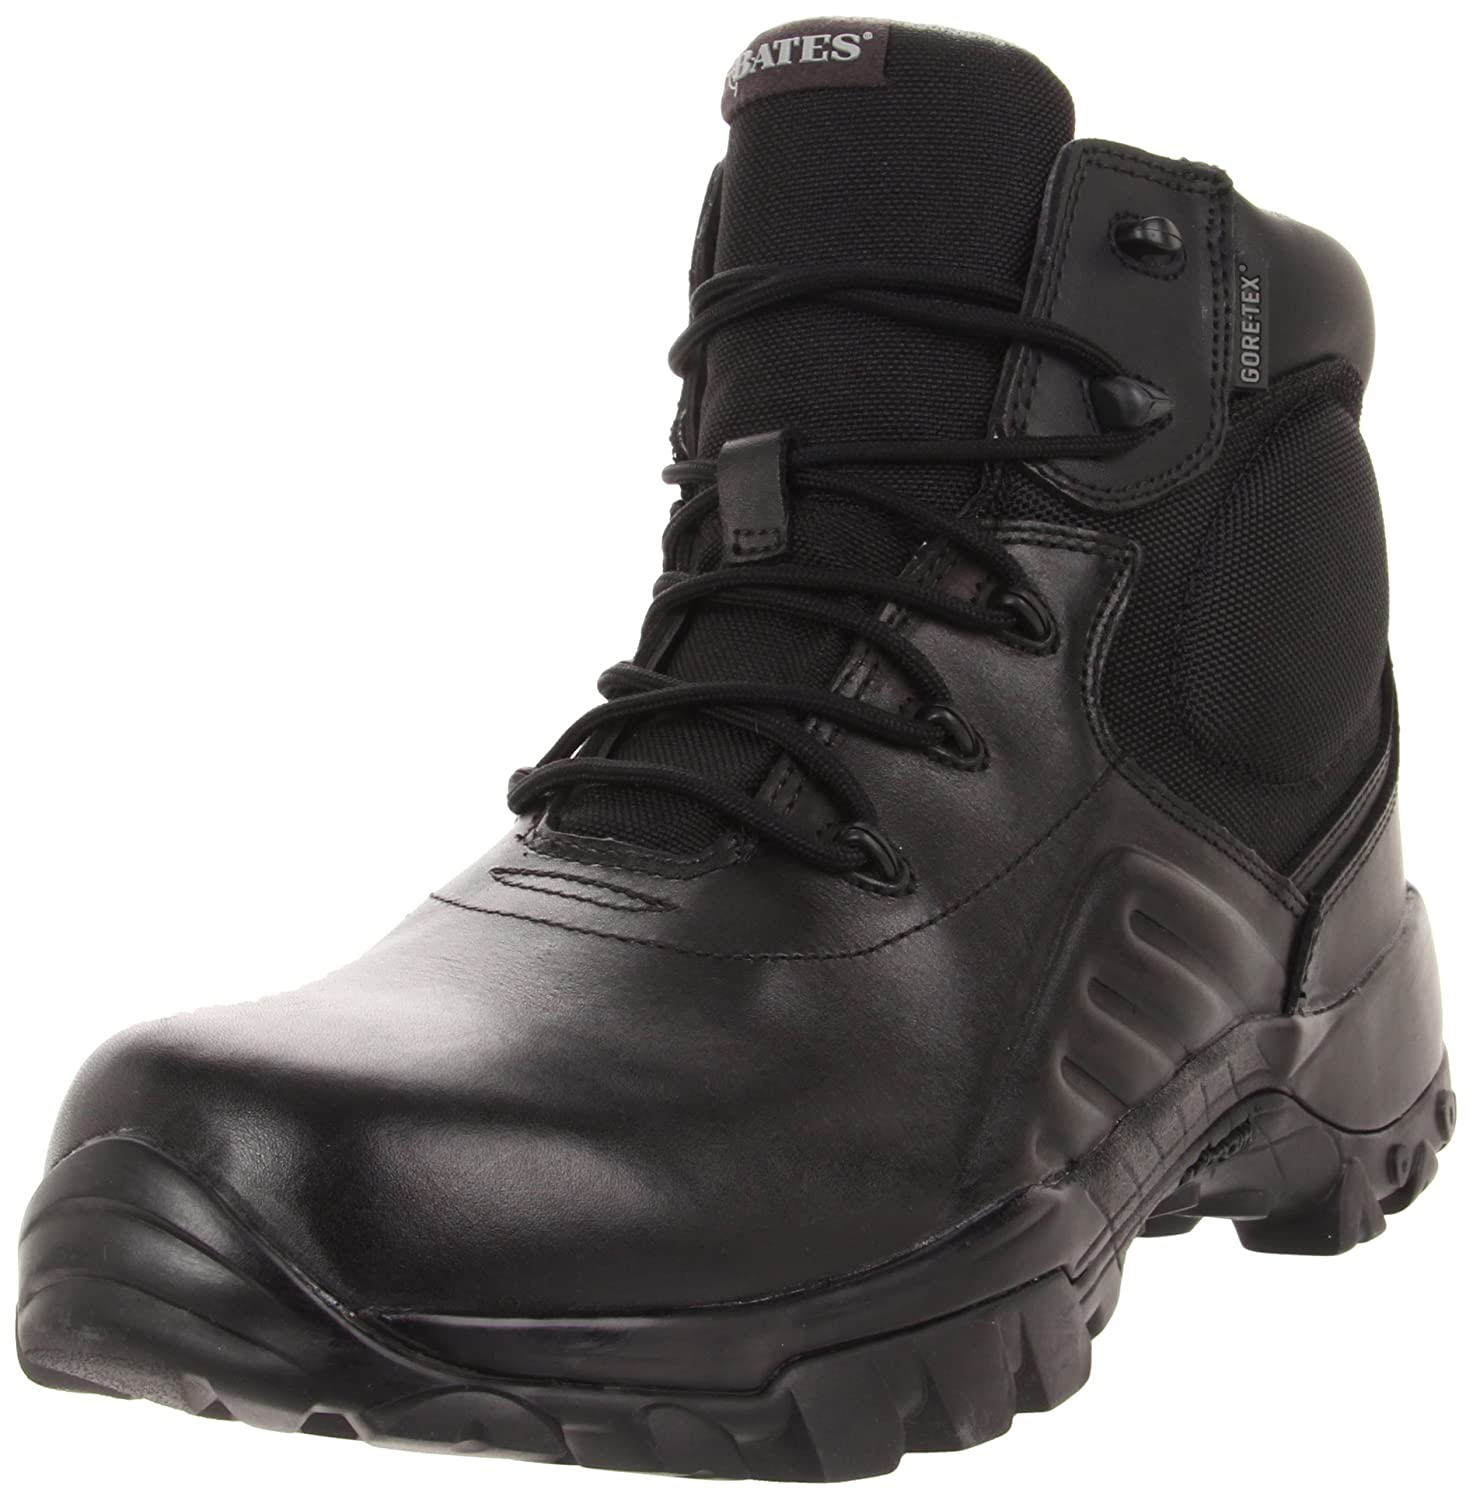 Bates Bates Bates Mens Delta 6 Gore-Tex Leather Stiefel 6760a8